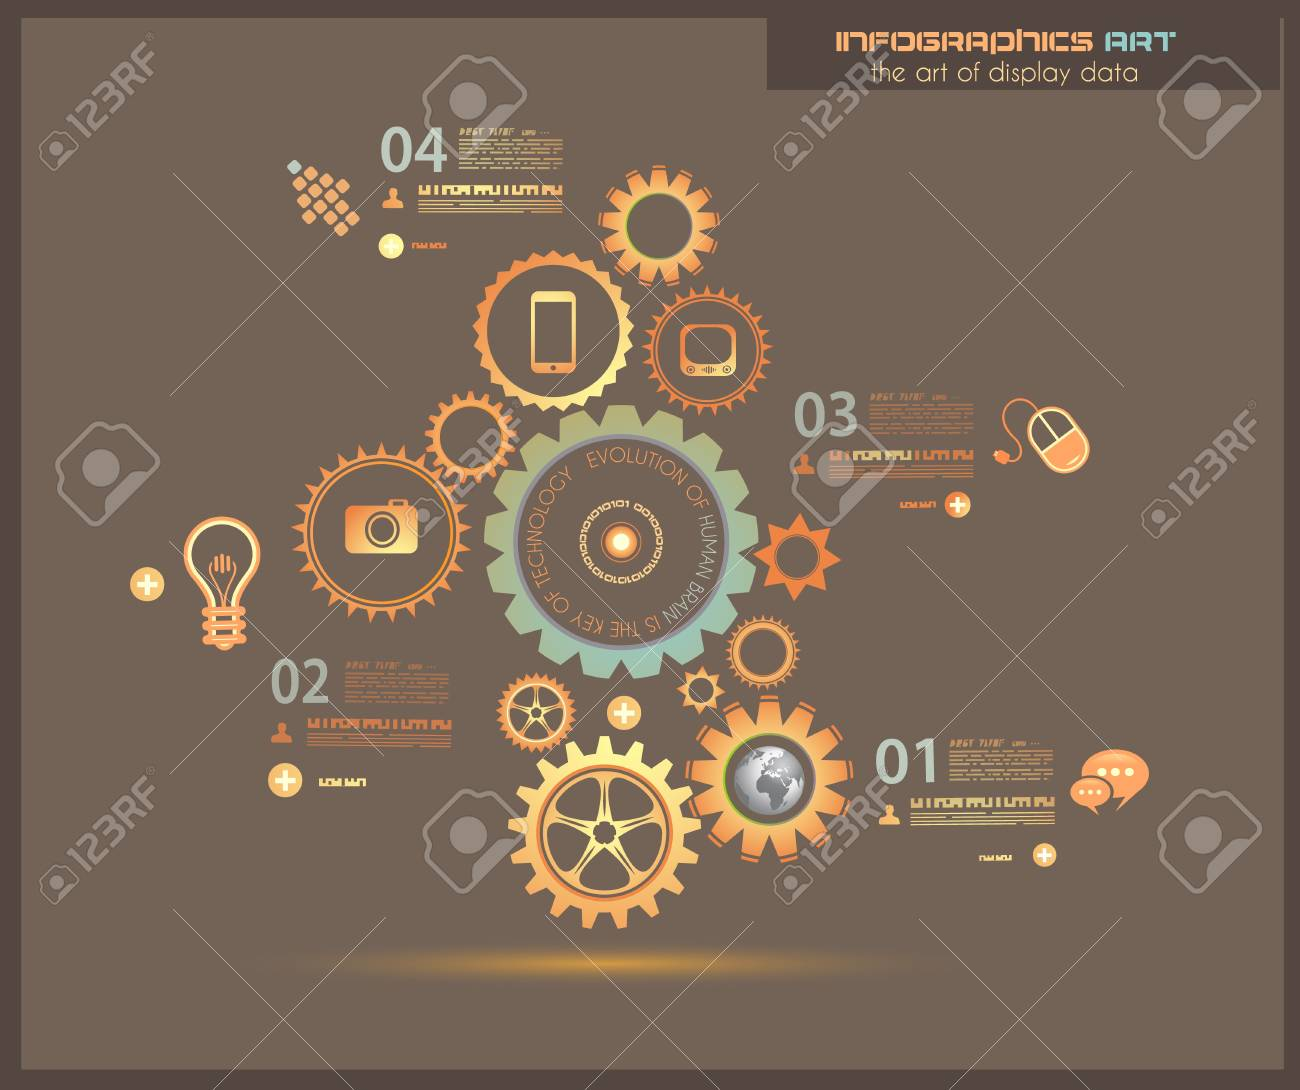 Infographic design template with gear chain. Ideal to display information, ranking and statistics with orginal and modern style. Stock Vector - 19657029